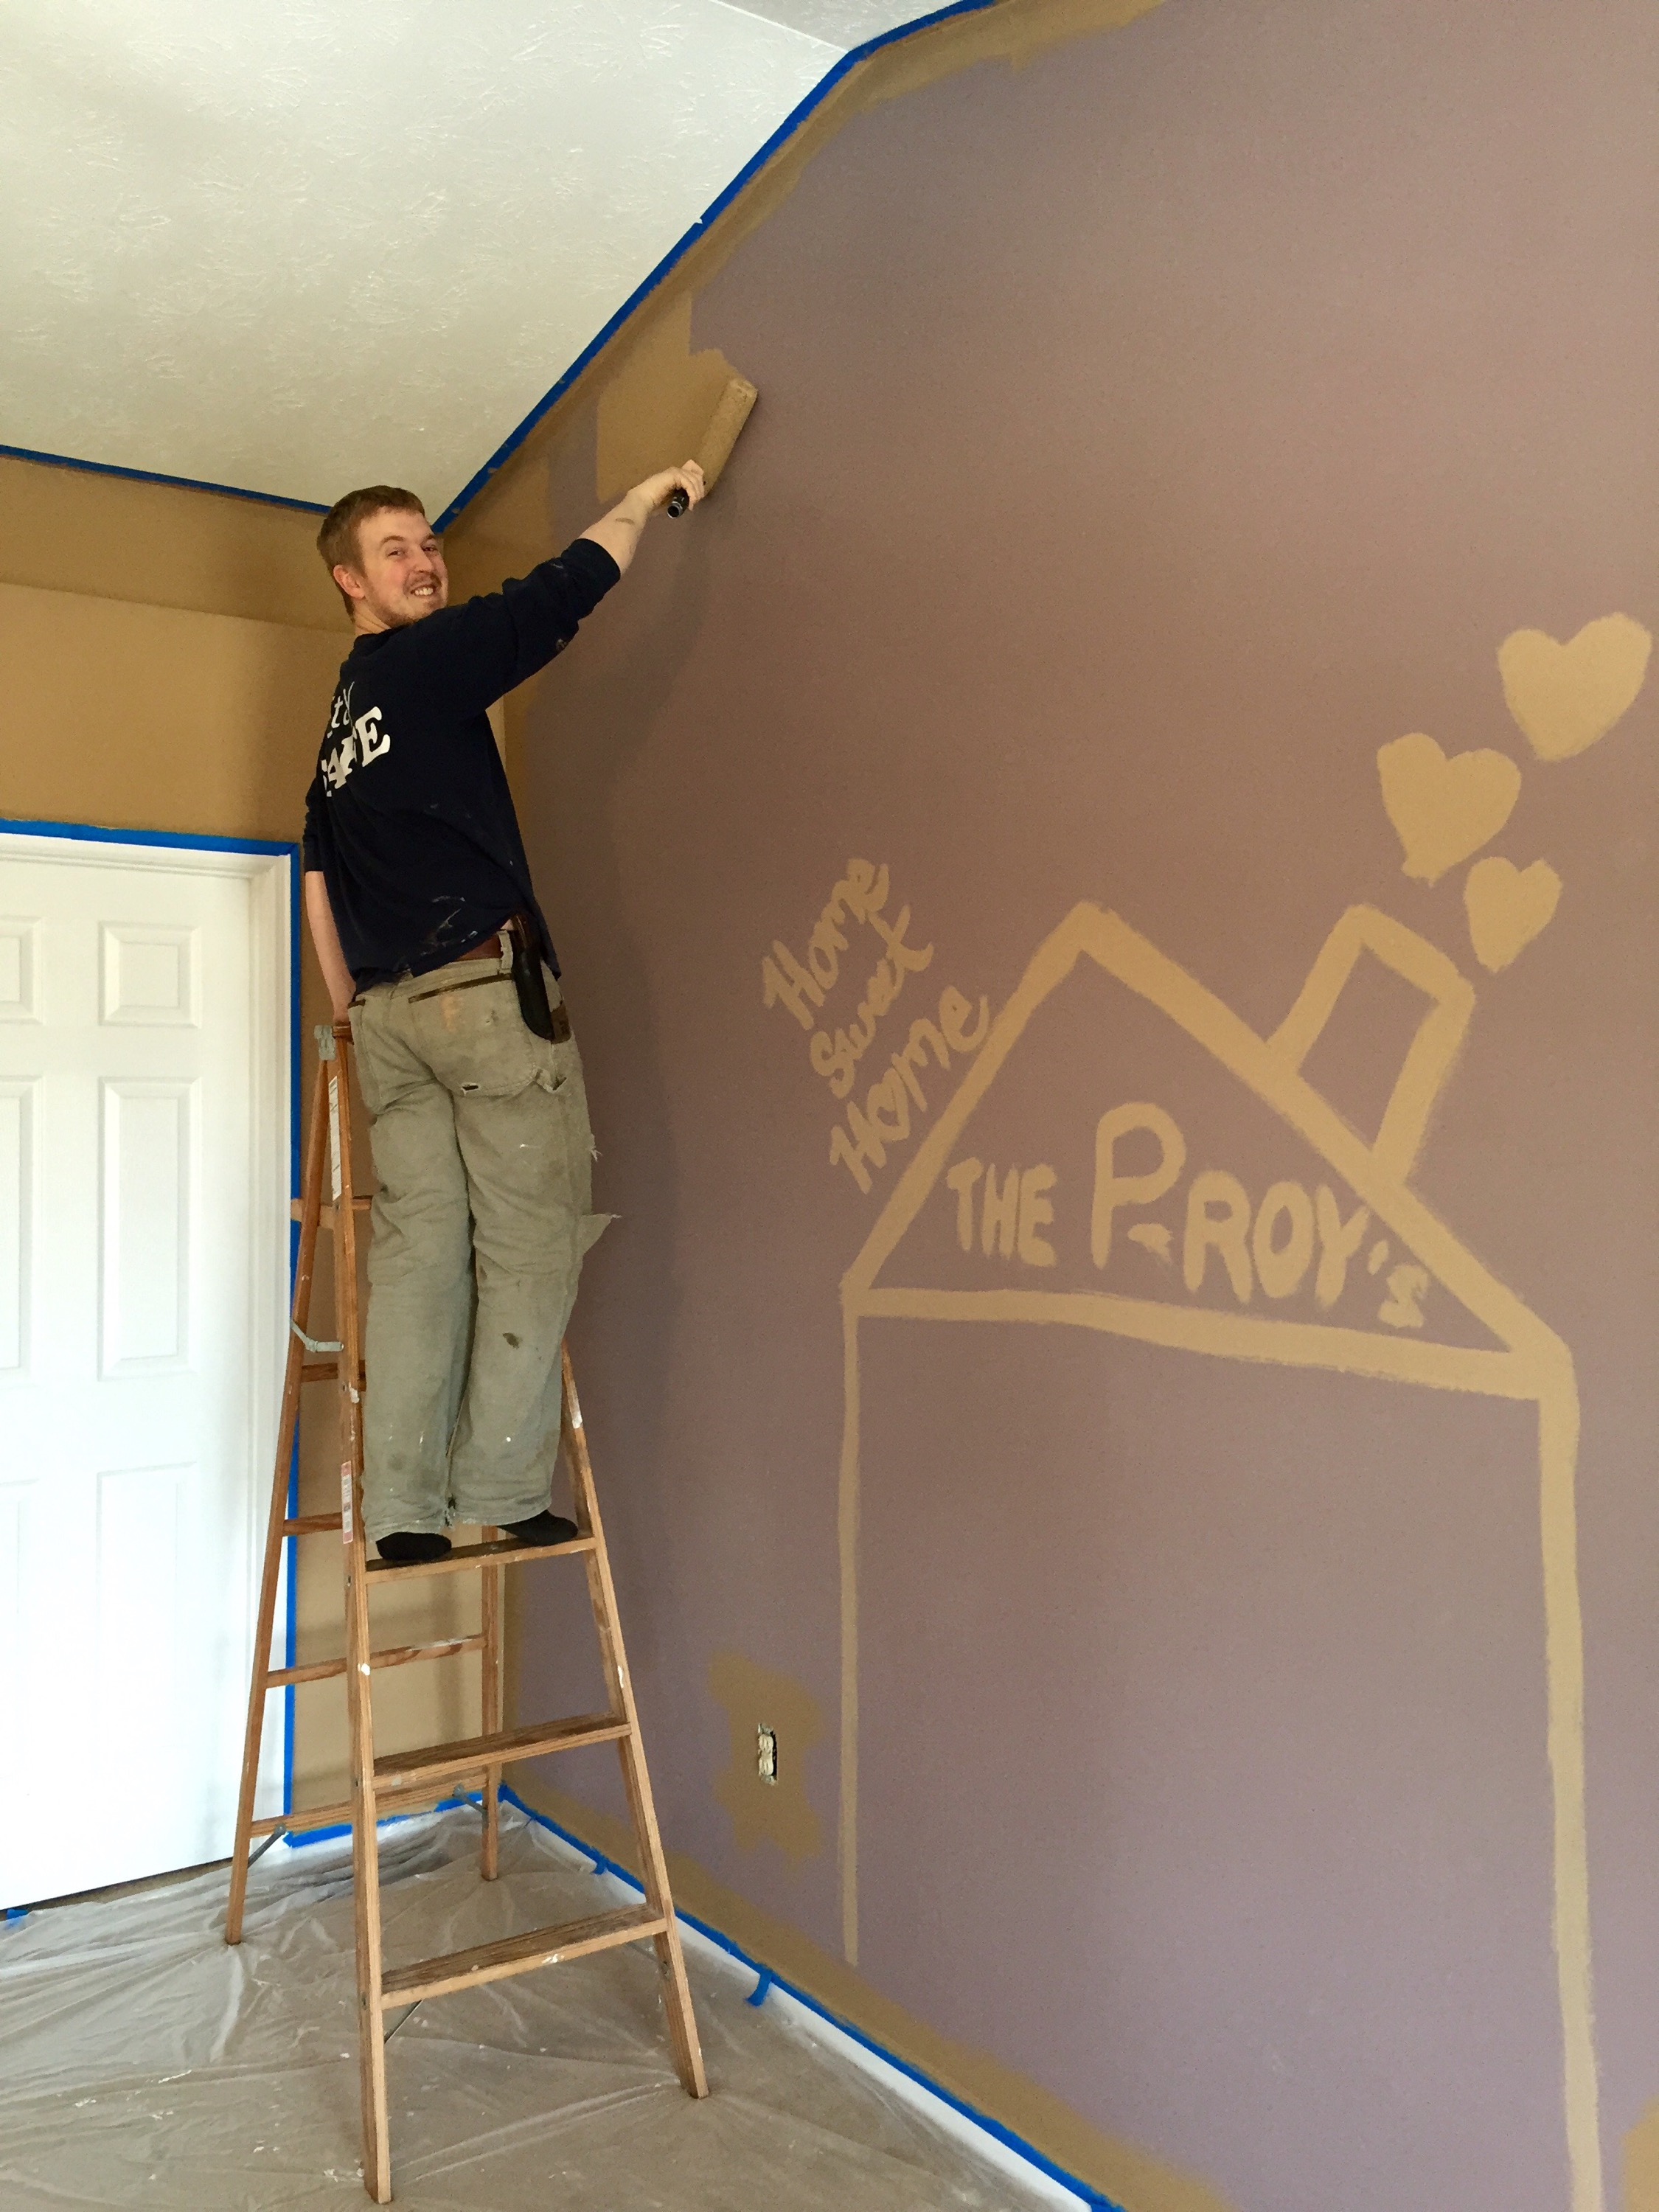 Turning Our House Into Our Home - Week 2 - Pair of Pomeroys: